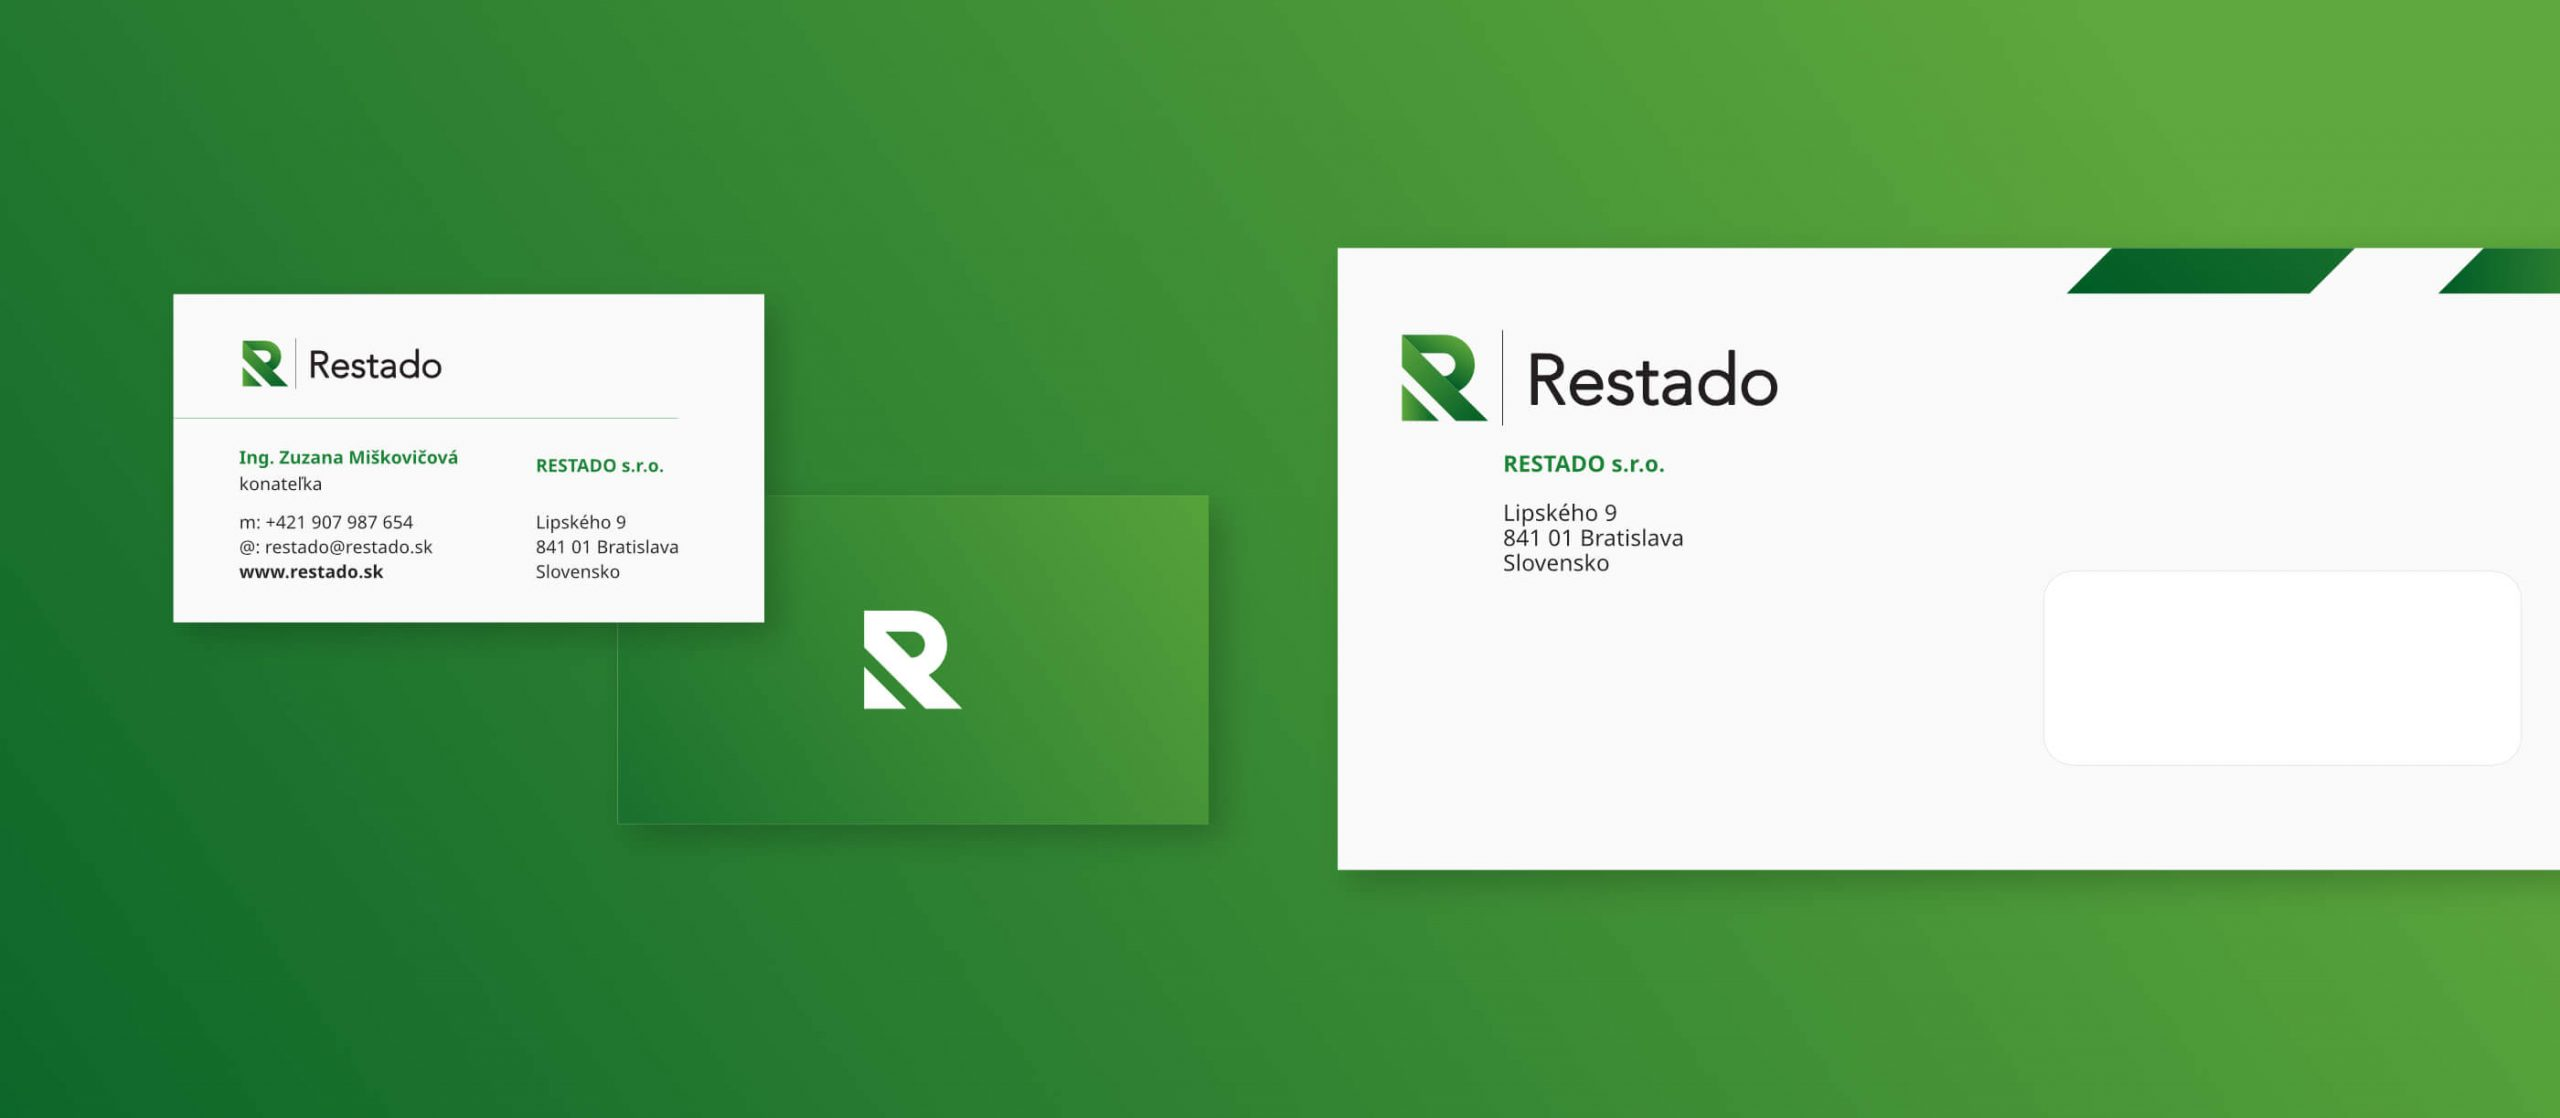 stationery design and branding for restado by michael maleek djibril